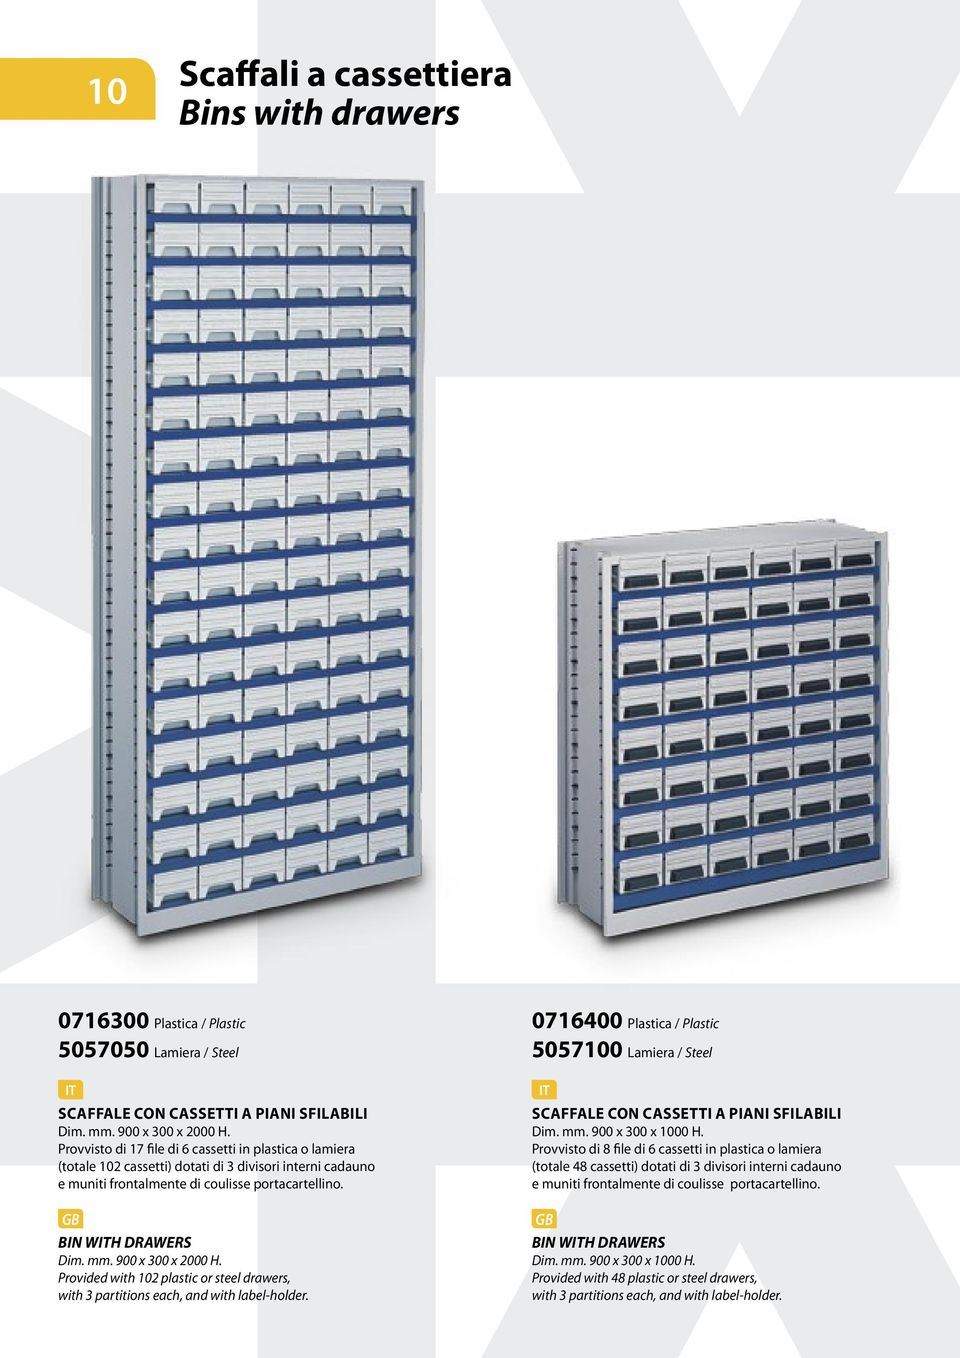 900 x 300 x 2000 H. Provided with 102 plastic or steel drawers, with 3 partitions each, and with label-holder.